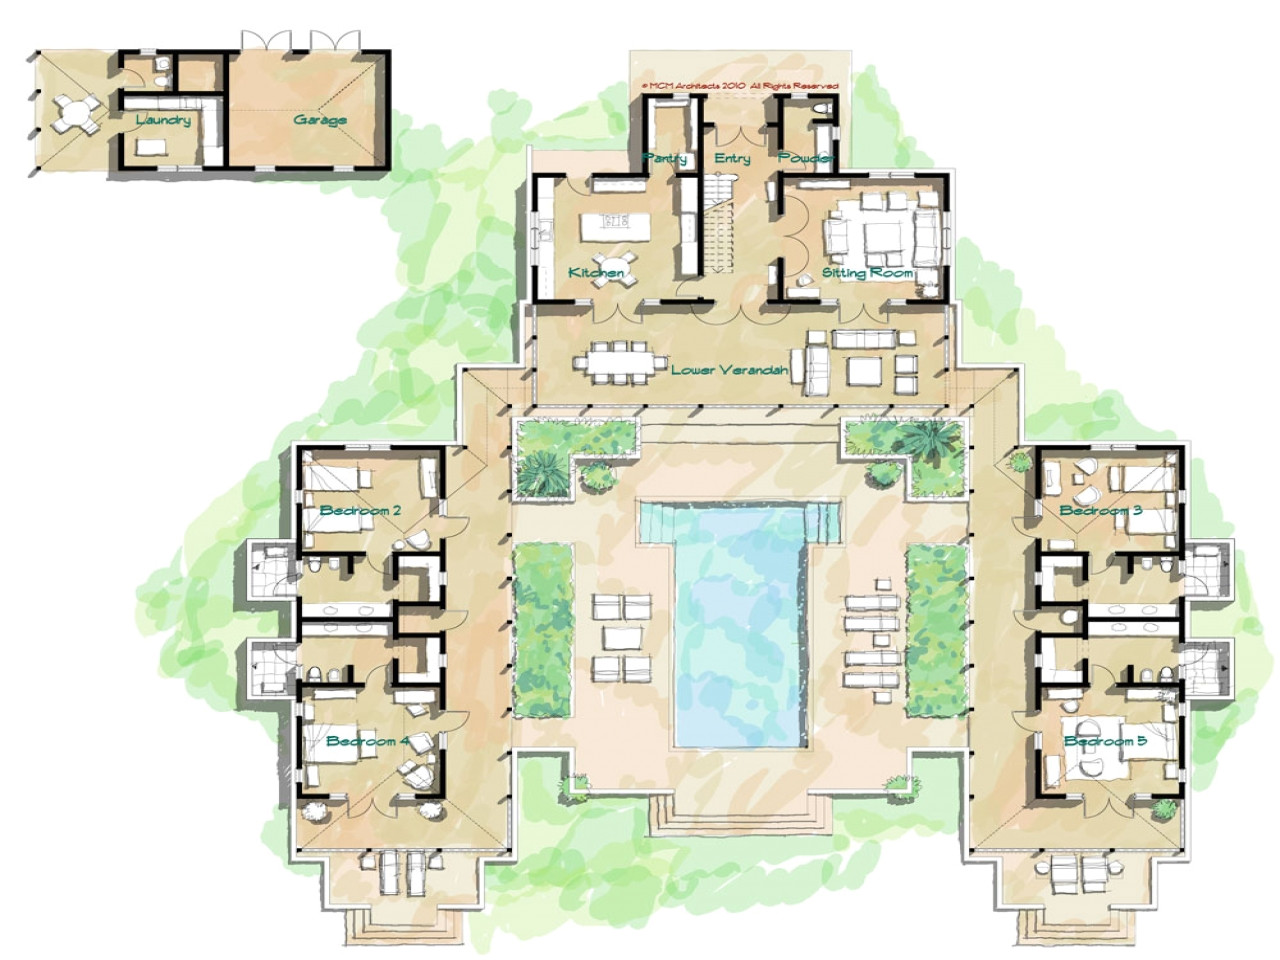 d791d7074ed73a93 hacienda style home floor plans spanish style homes with courtyards